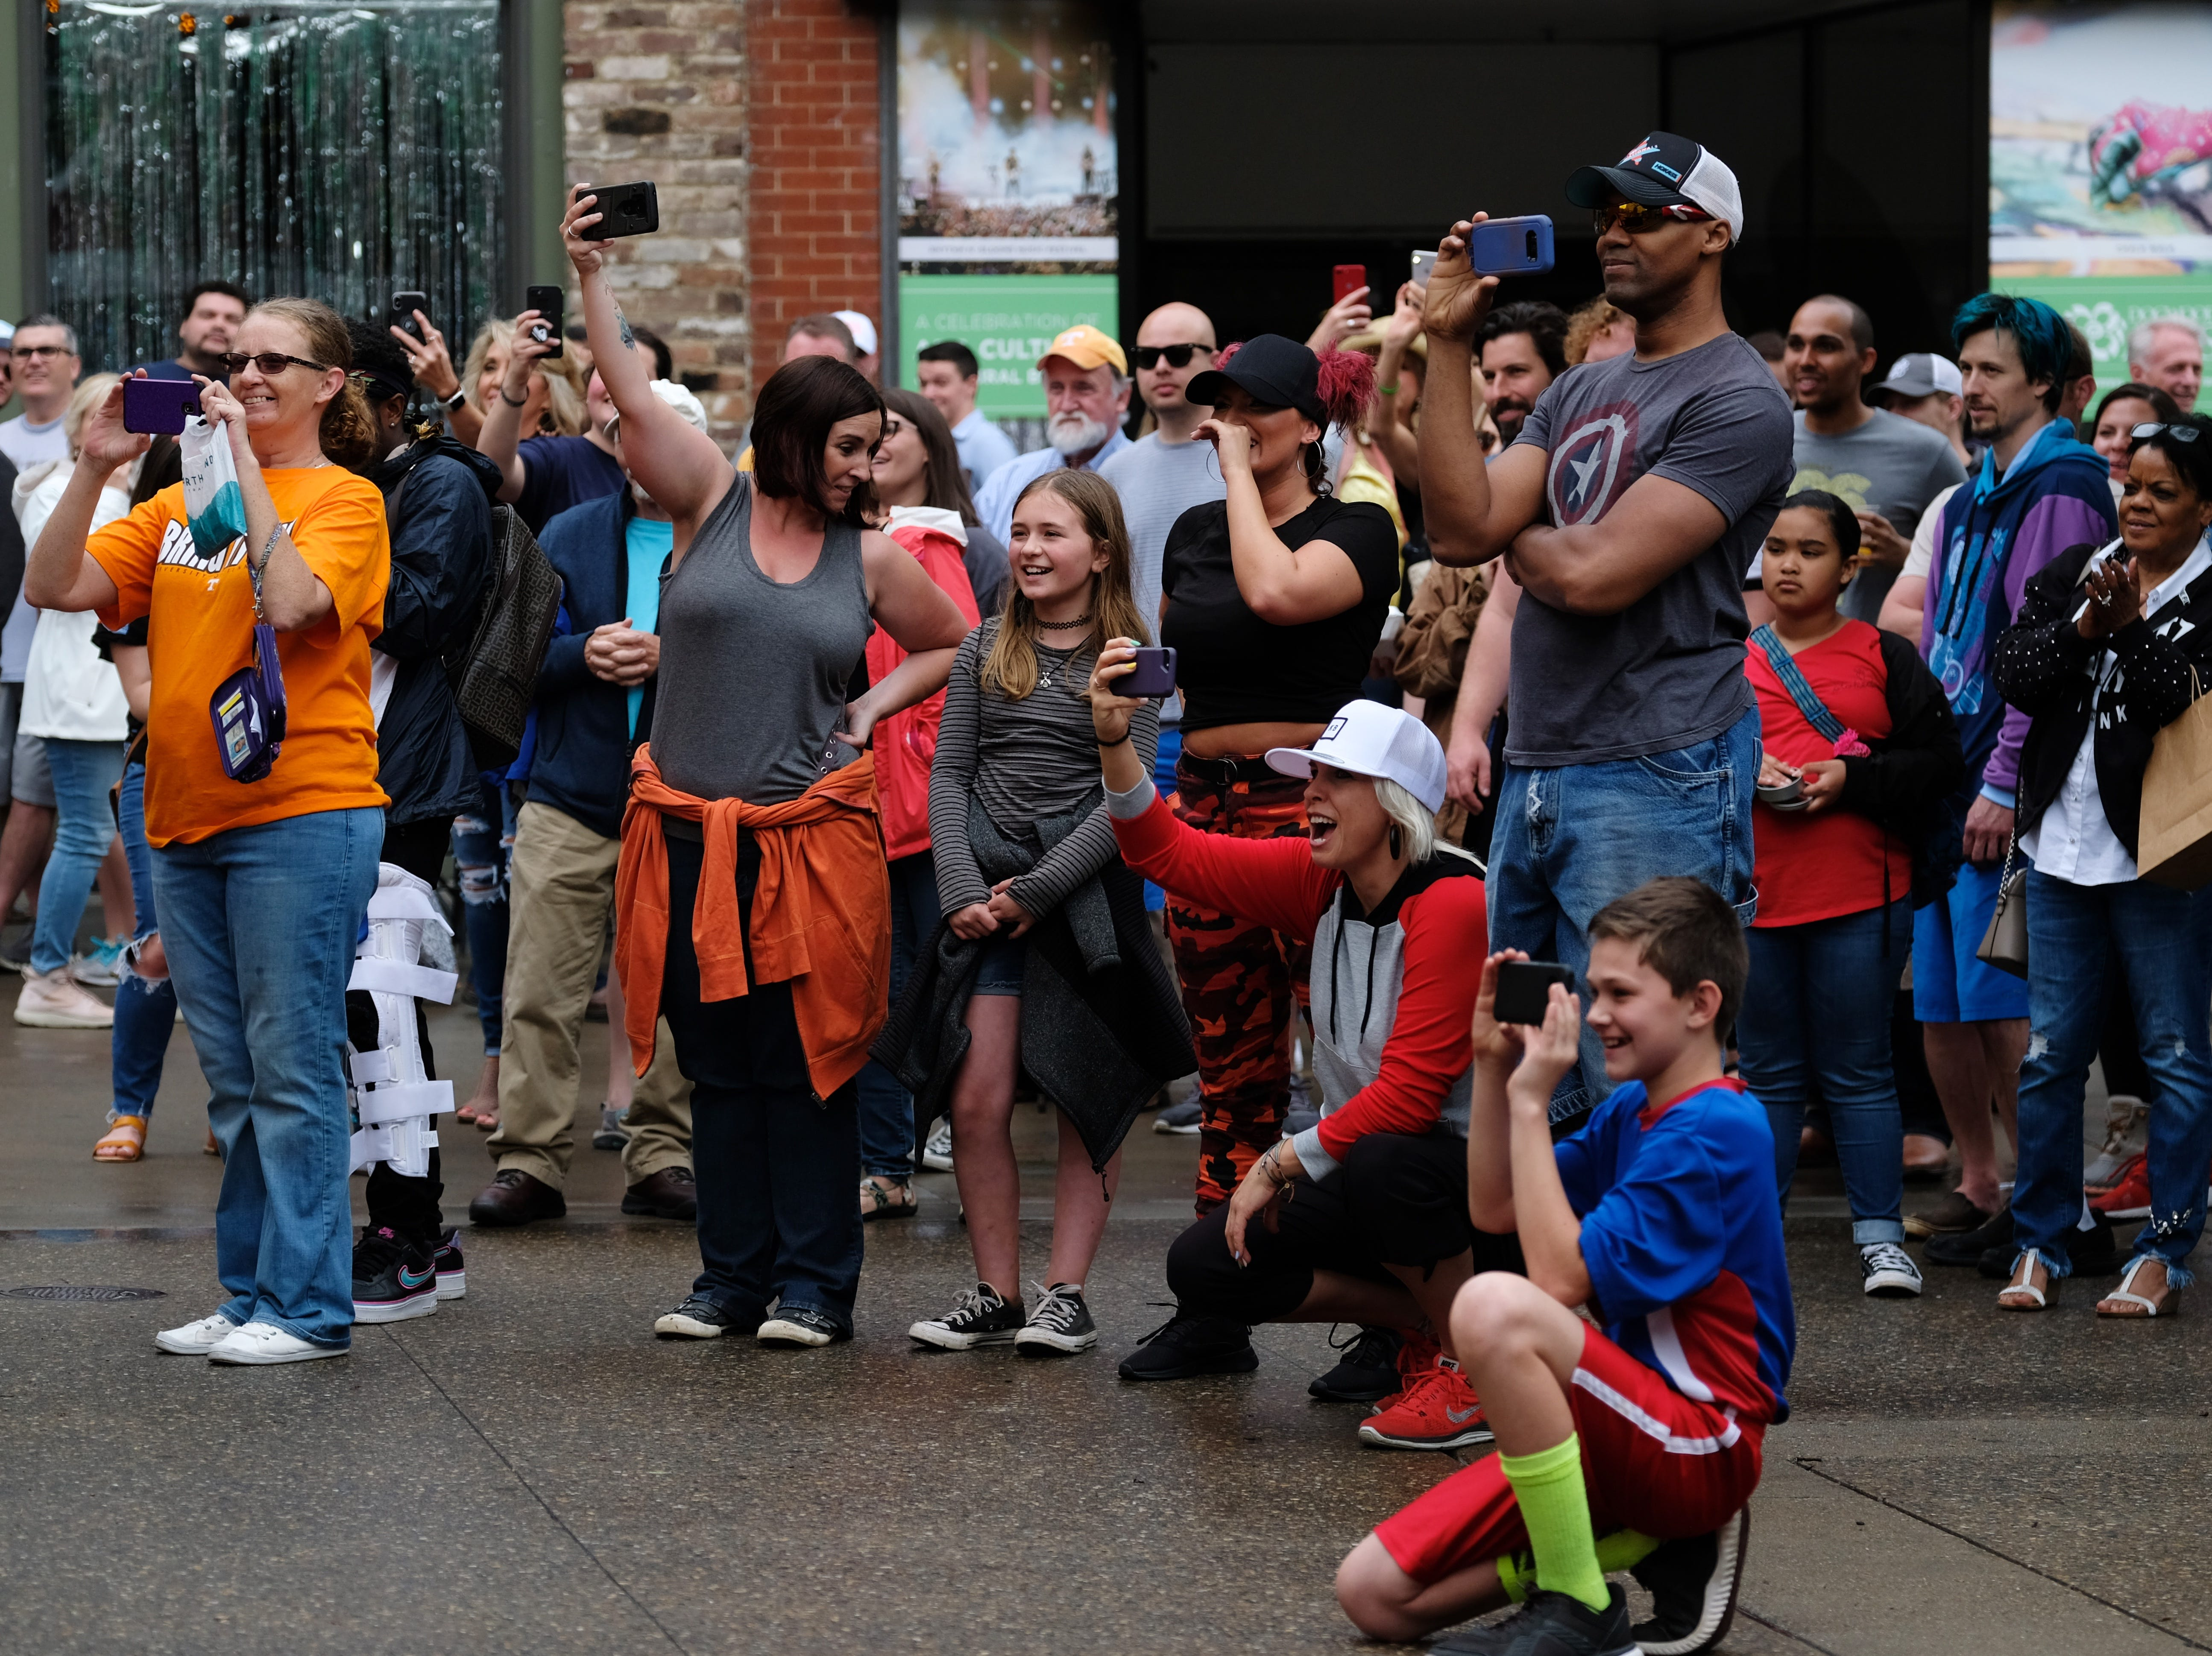 Attendees watch as the Broadway Academy performs during the Rossini Festival in Knoxville on Saturday, April 13, 2019. (Shawn Millsaps/Special to News Sentinel)